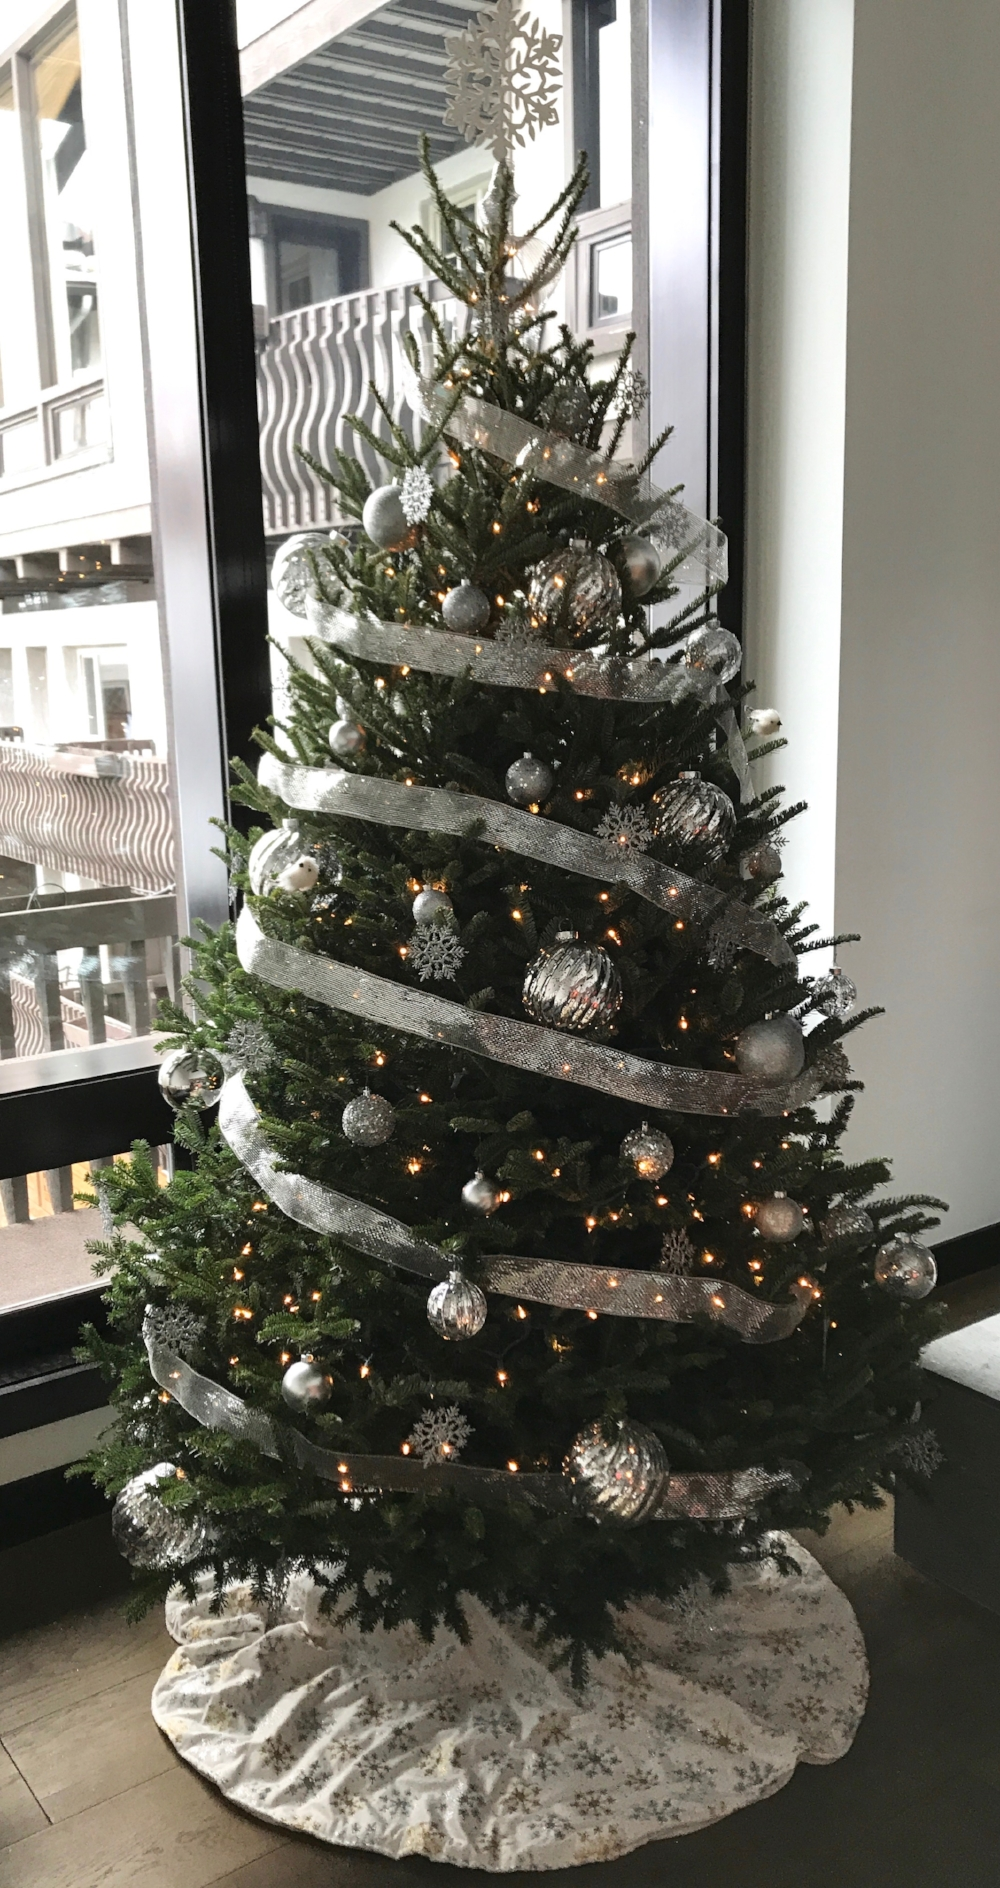 COCO Christmas Trees make your condo, home or chalet sparkle!!!